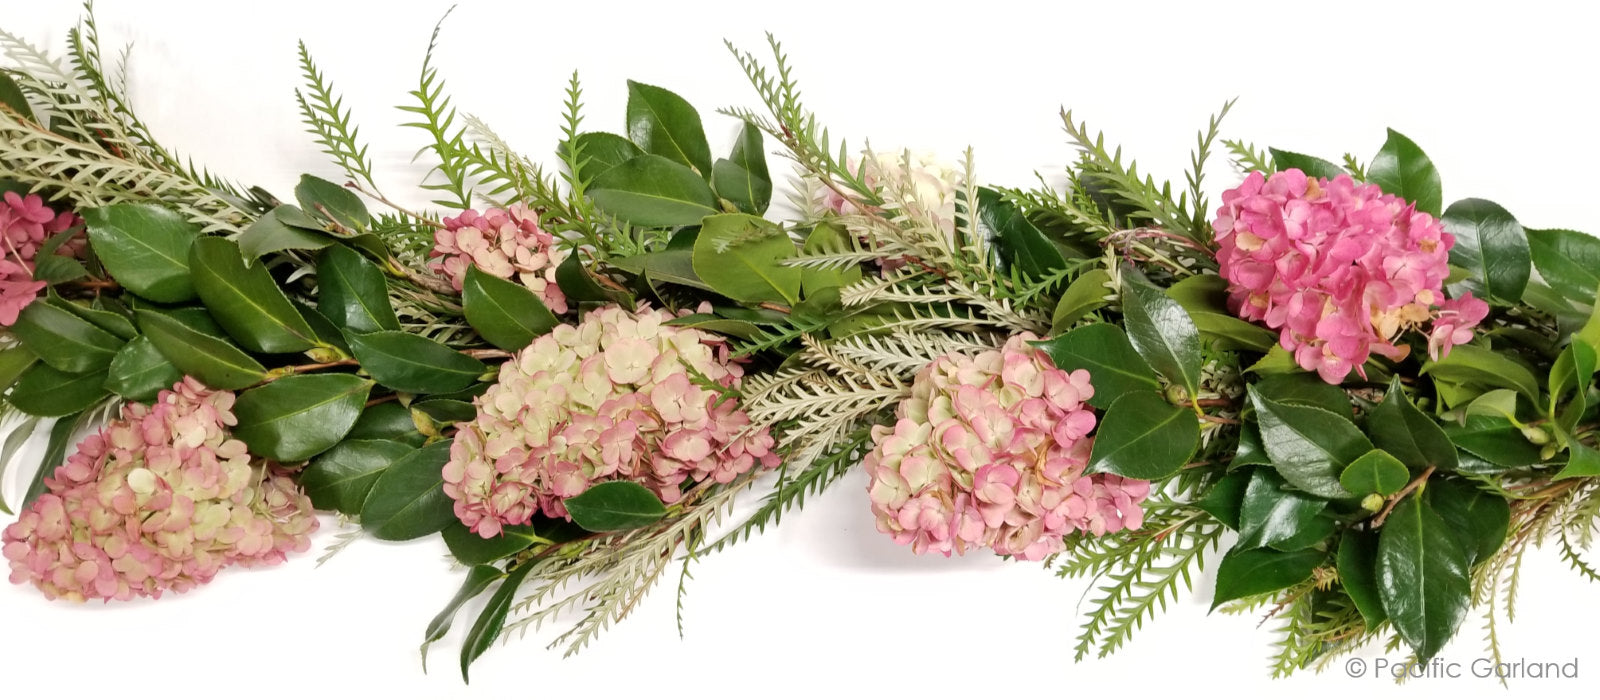 Stunning Hydrangea garland with Camellia and Grevillea